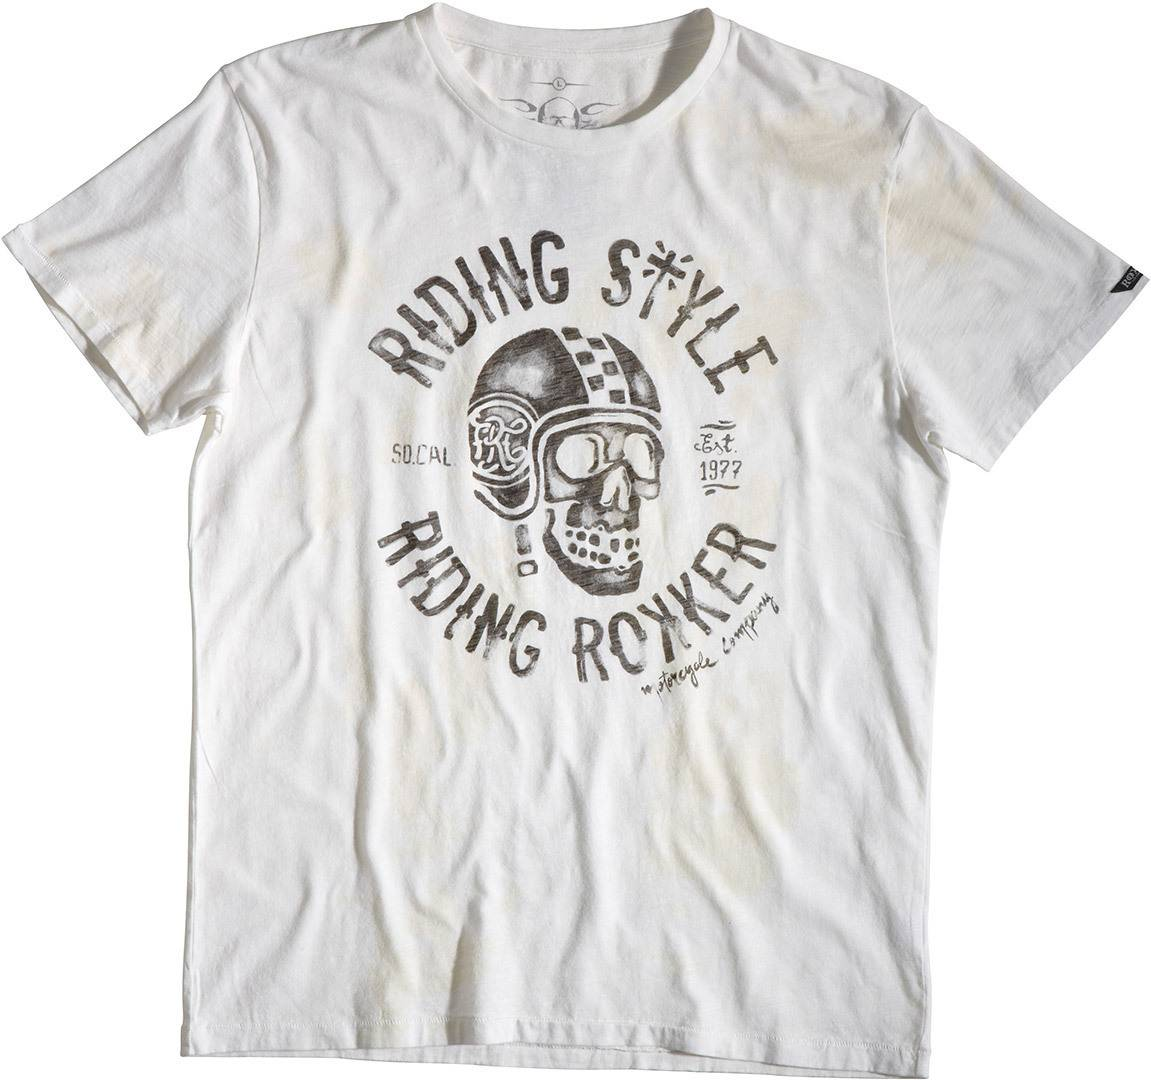 Rokker Riding T-Shirt Blanc taille : 2XL